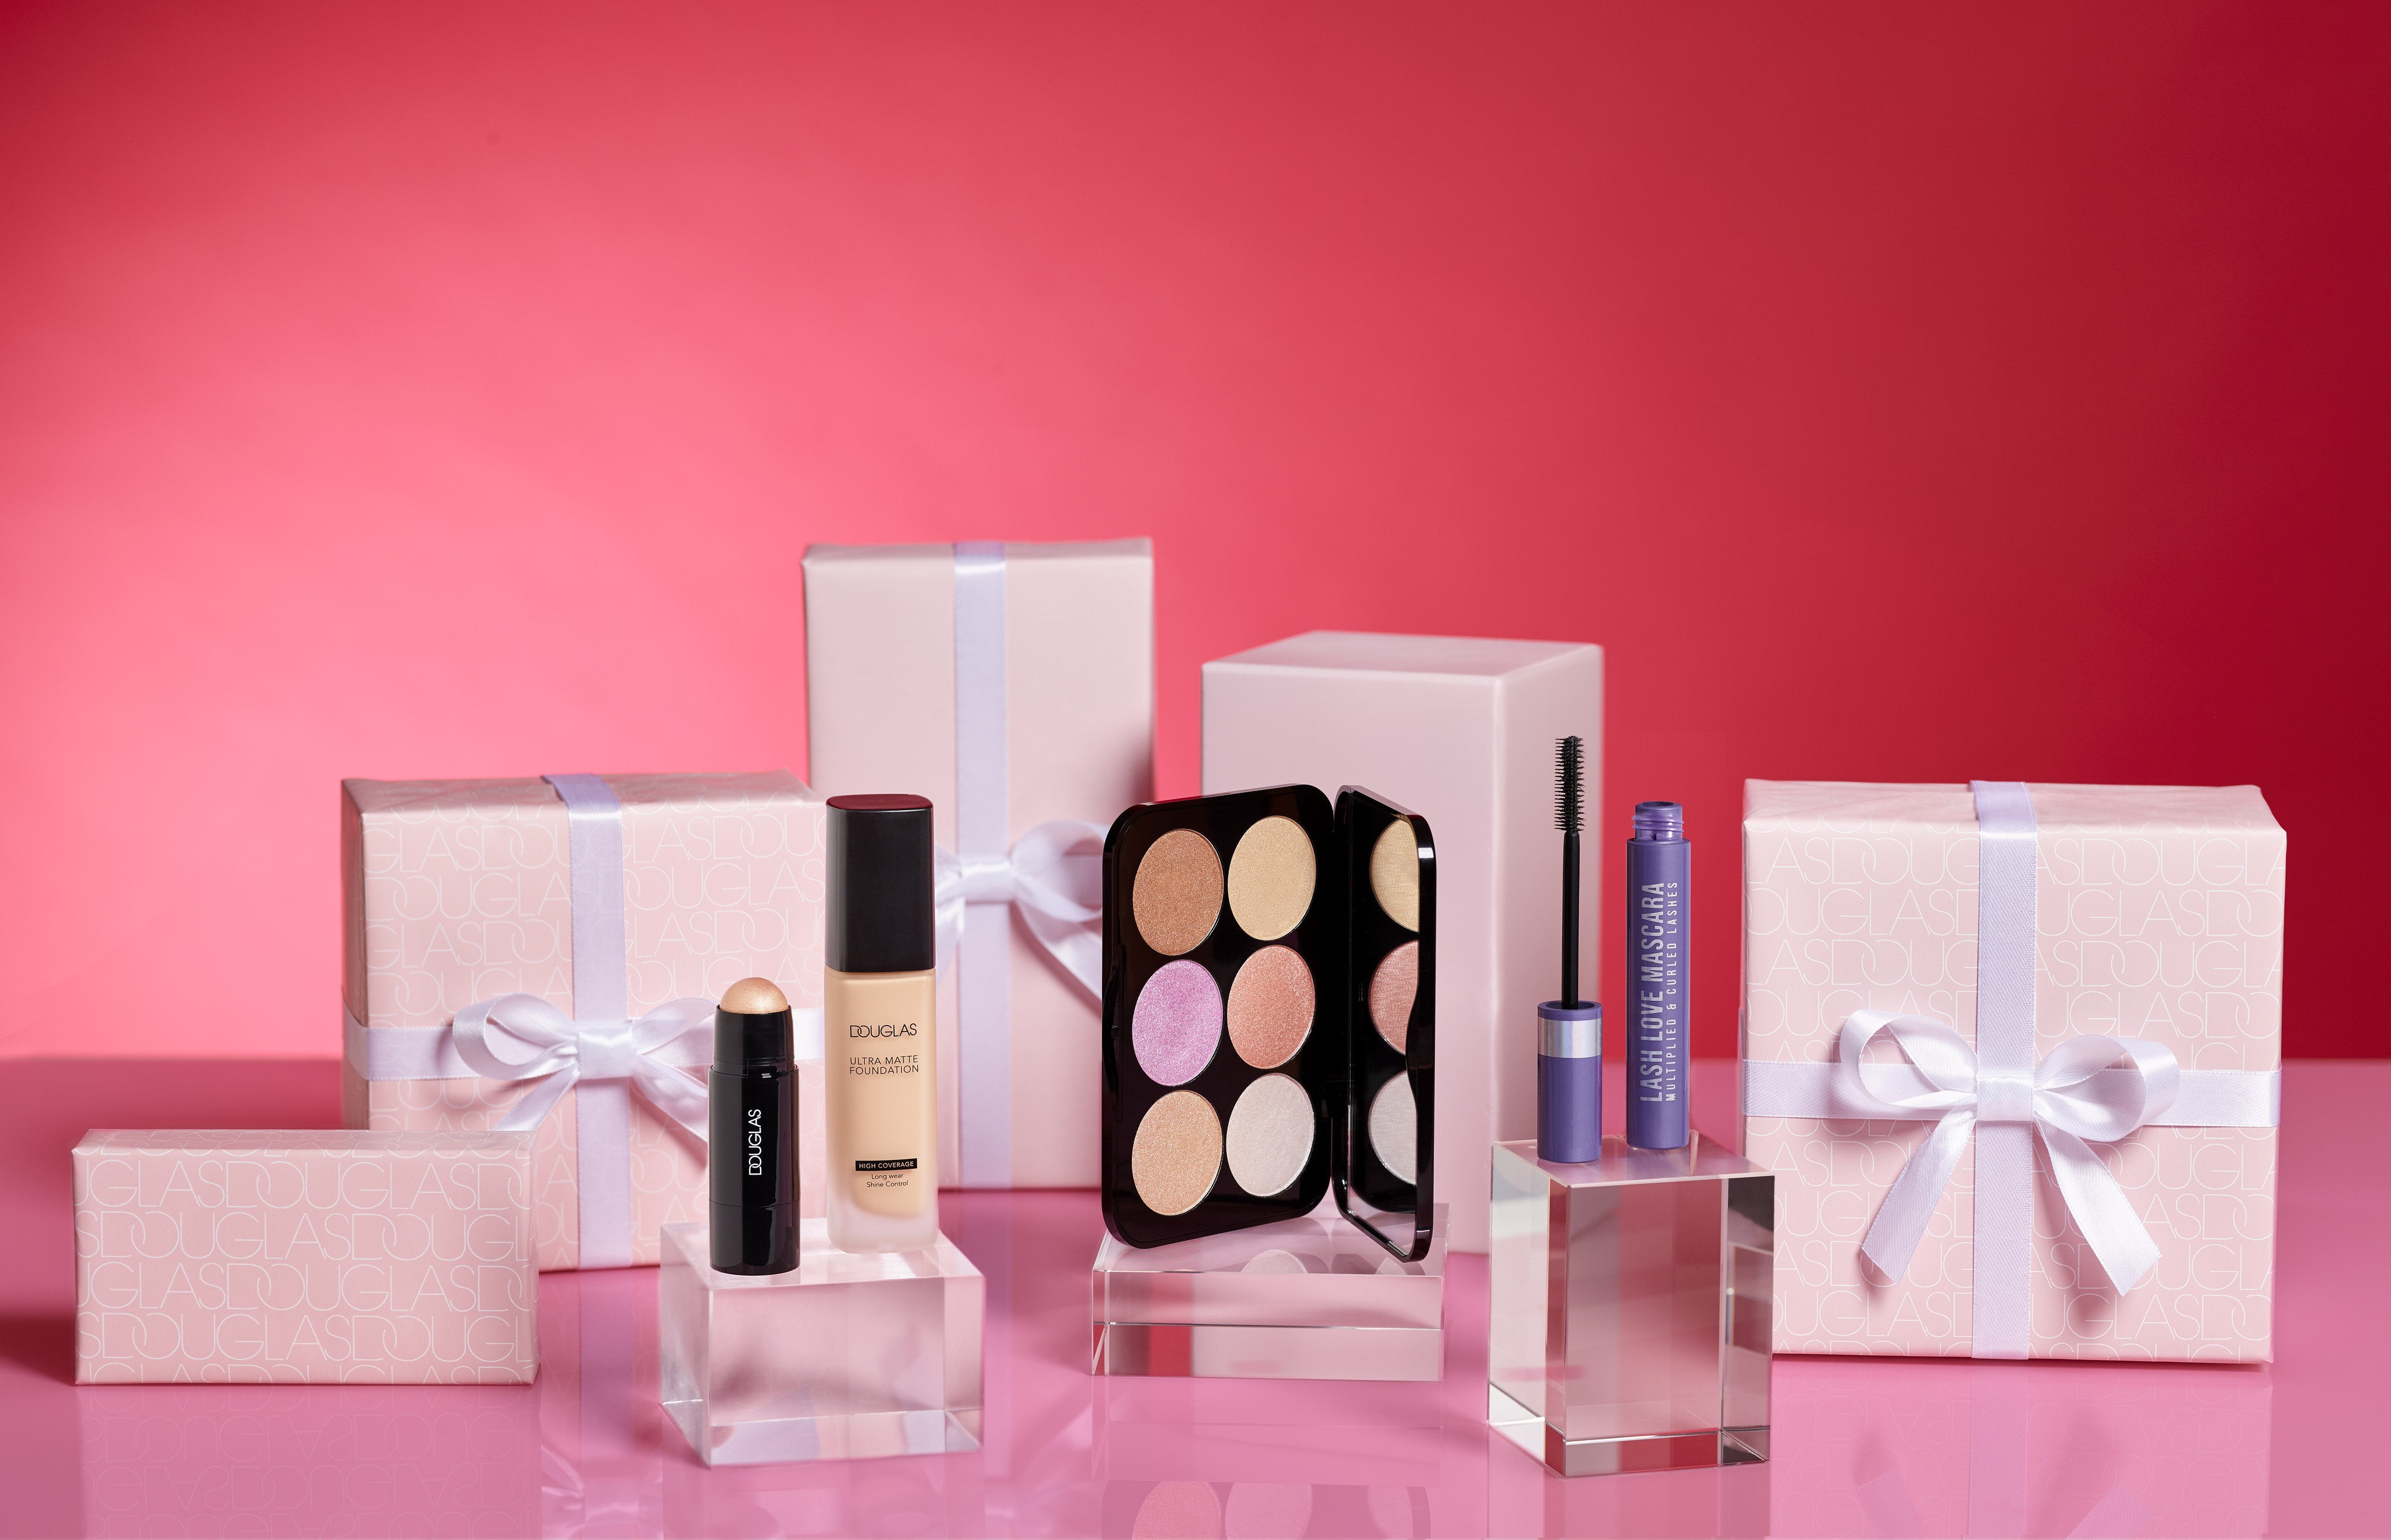 Makeup-product-valentinesday-red-pink-gifts-dc-1022-Web-Rendition